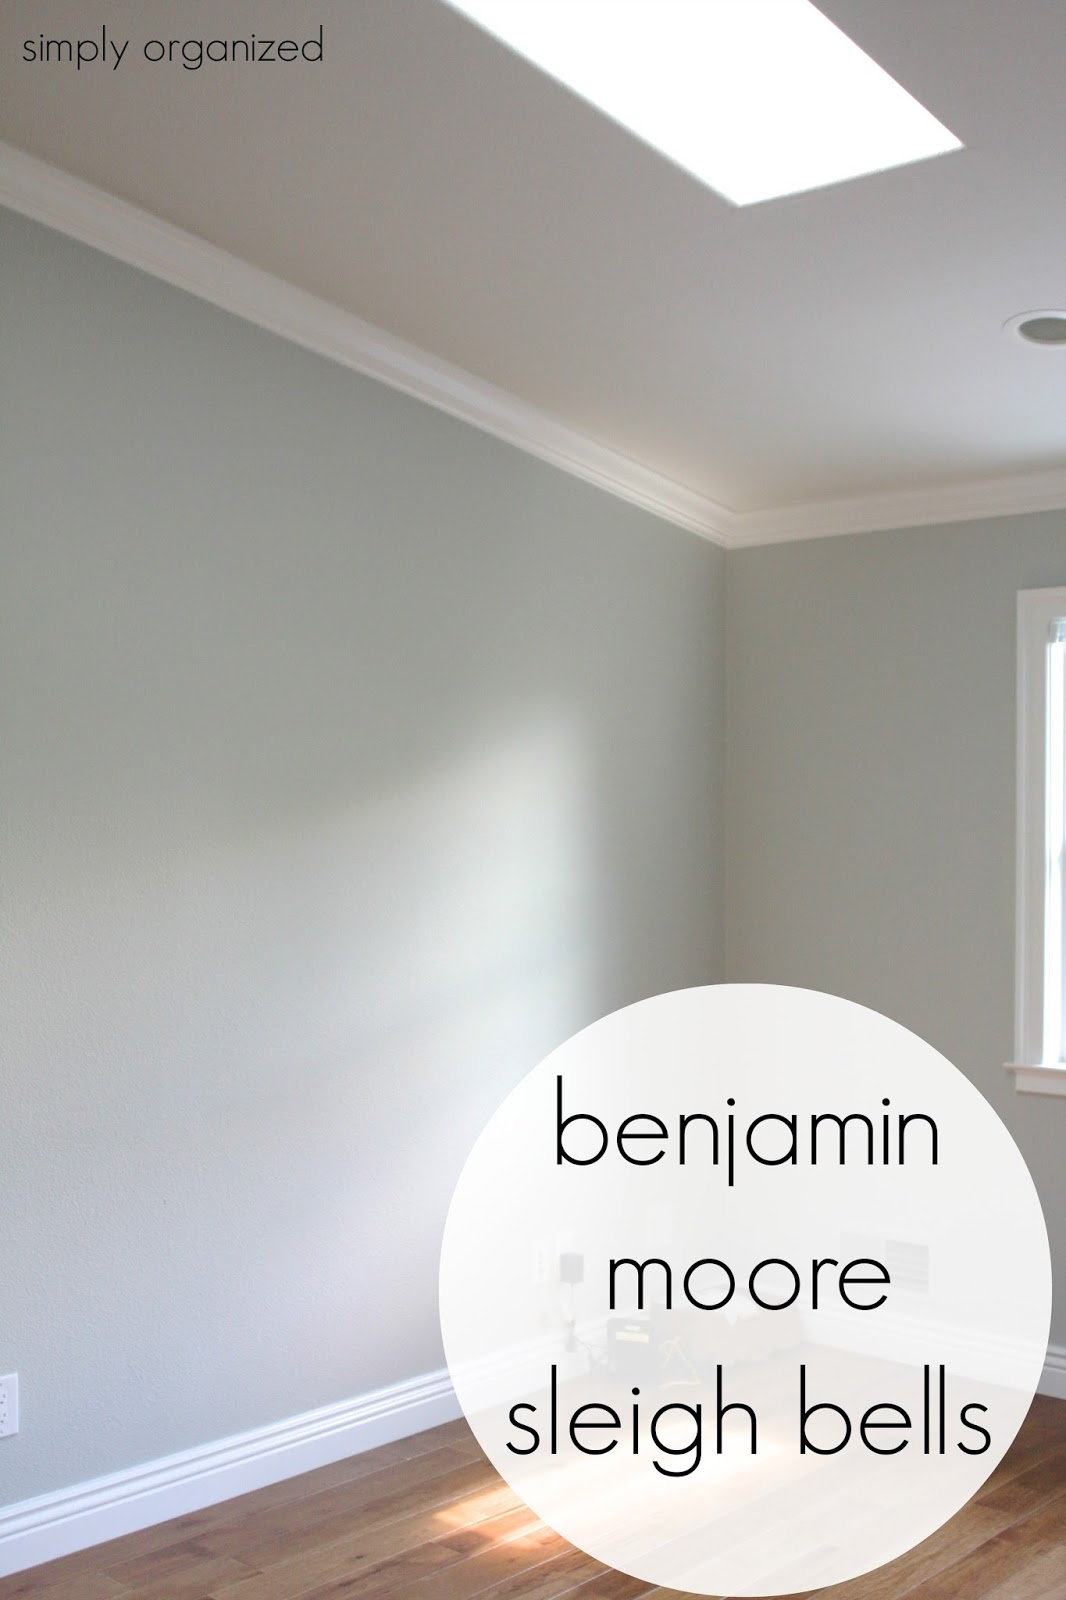 My home interior paint color palate simply organized - Benjamin moore interior paint colors ...